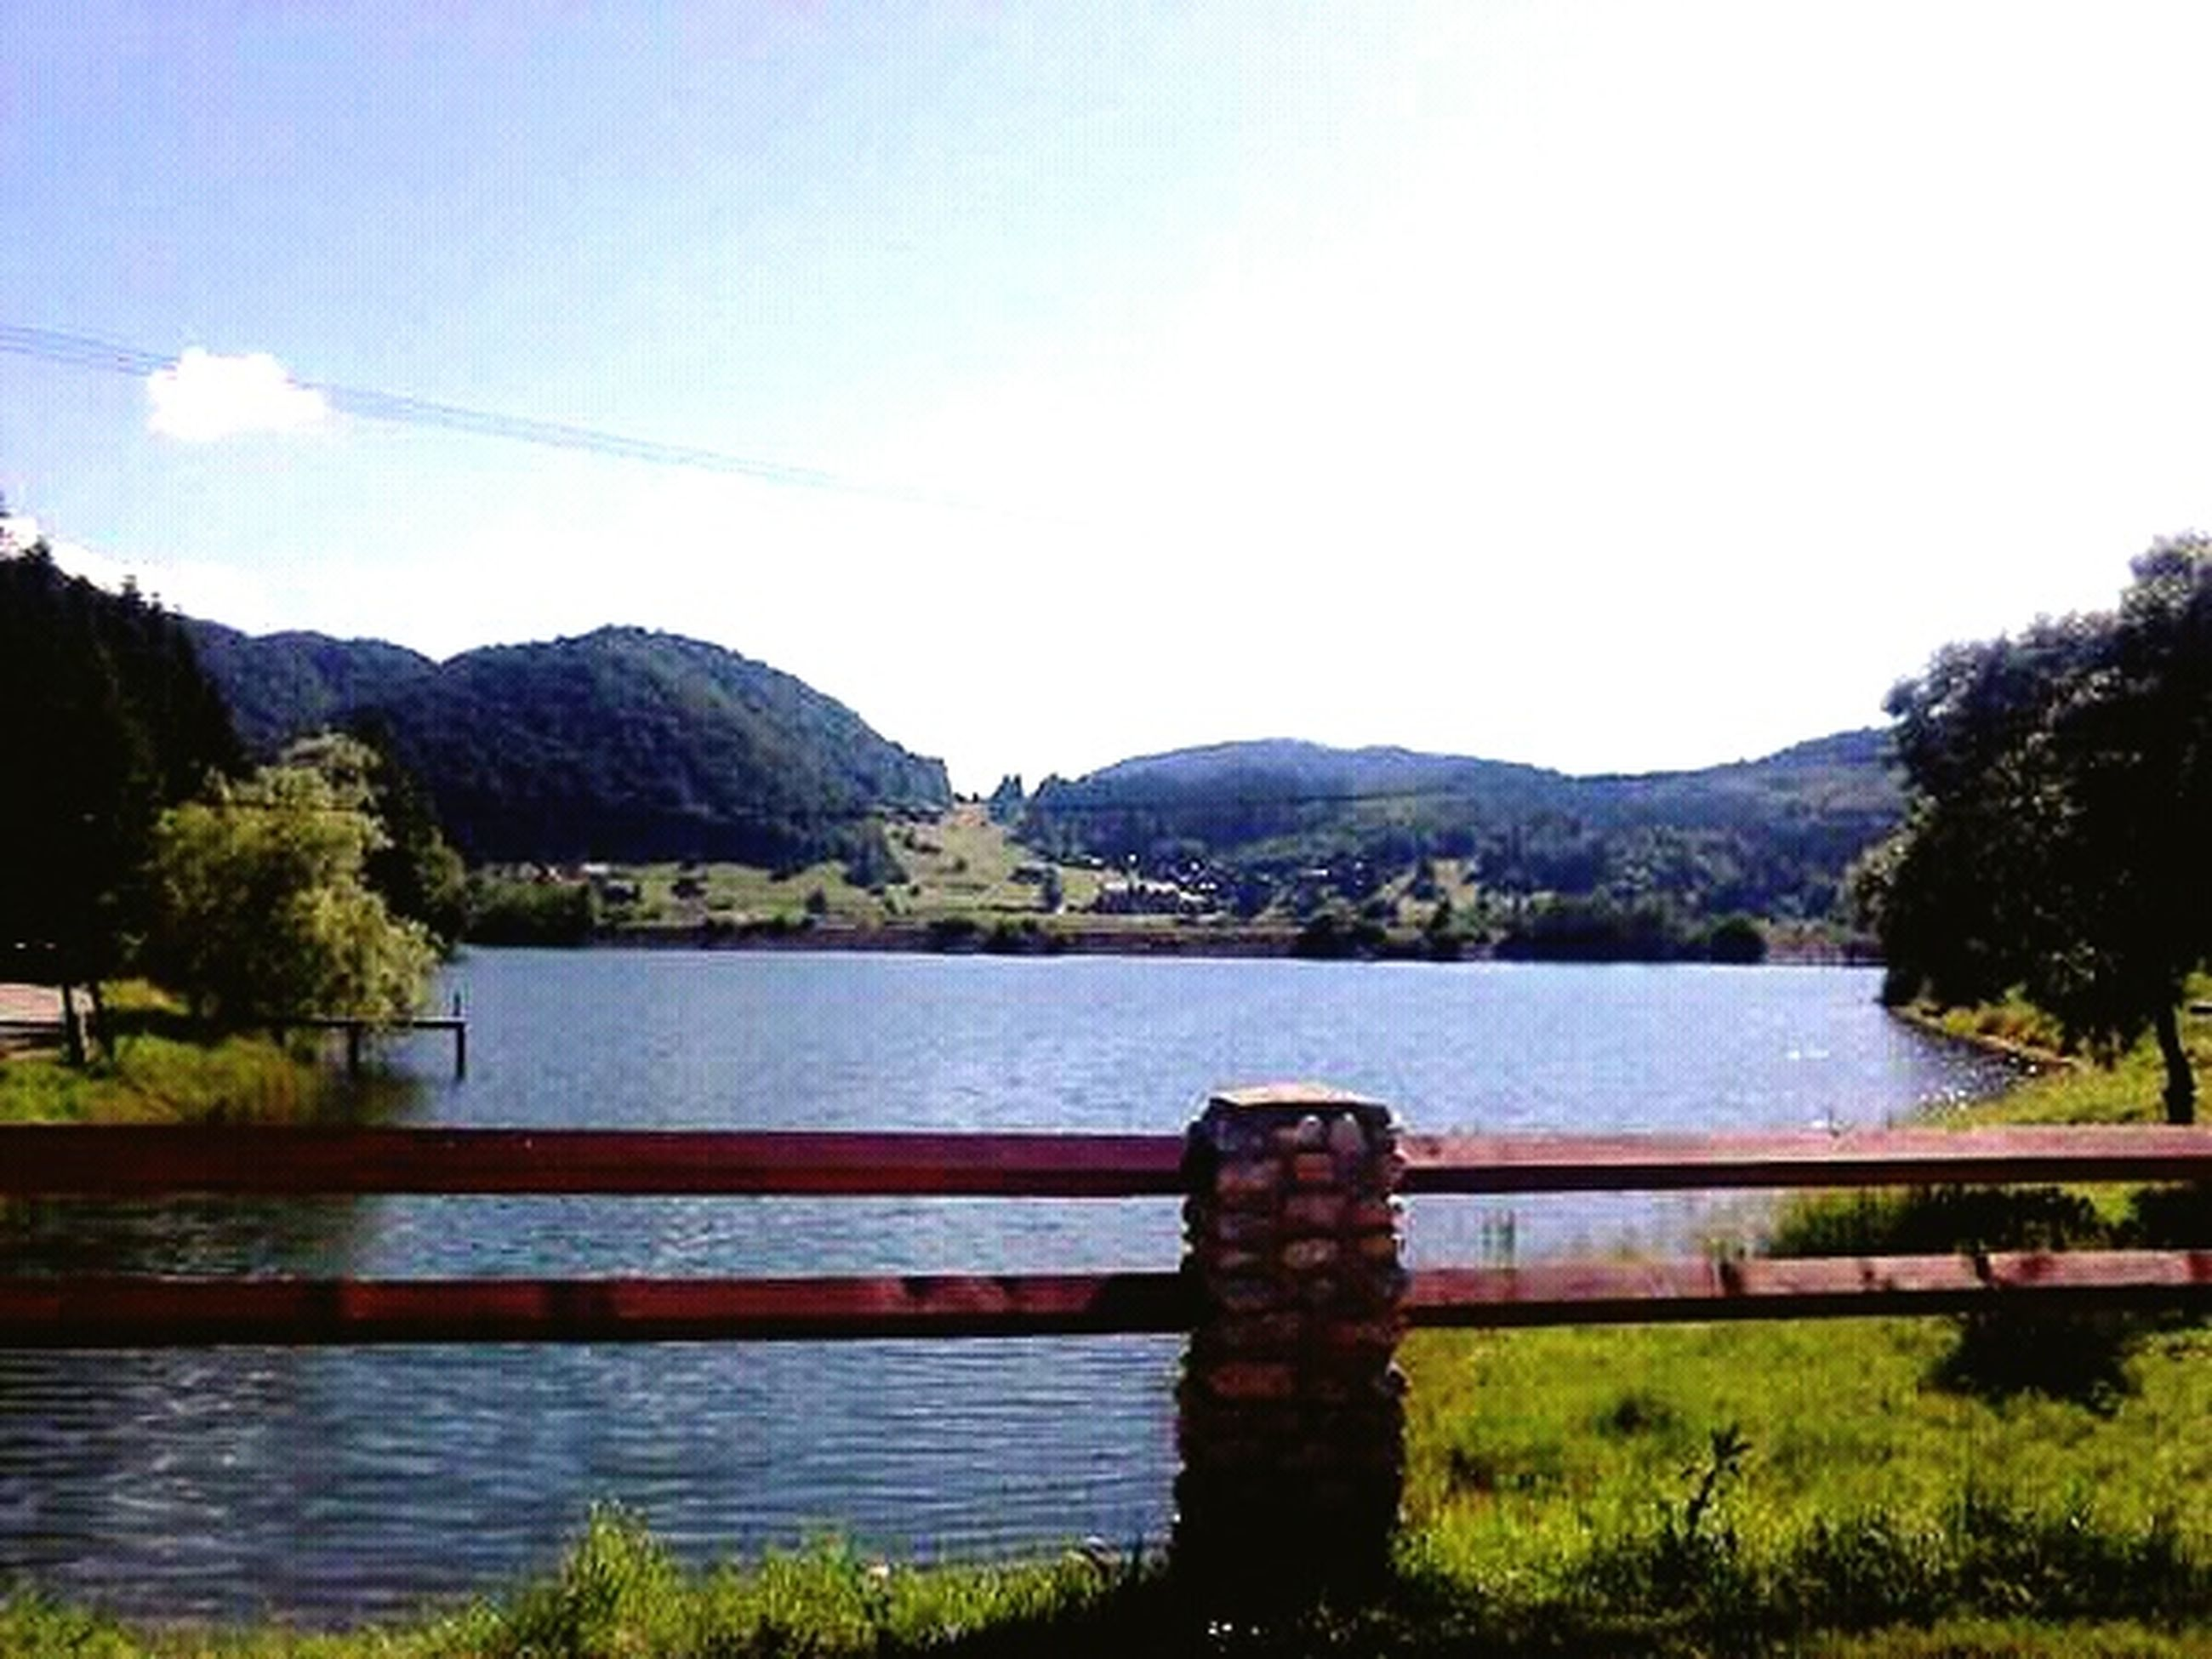 mountain, water, mountain range, lake, tranquil scene, tranquility, scenics, beauty in nature, nature, sky, blue, river, clear sky, tree, idyllic, railing, landscape, countryside, day, non-urban scene